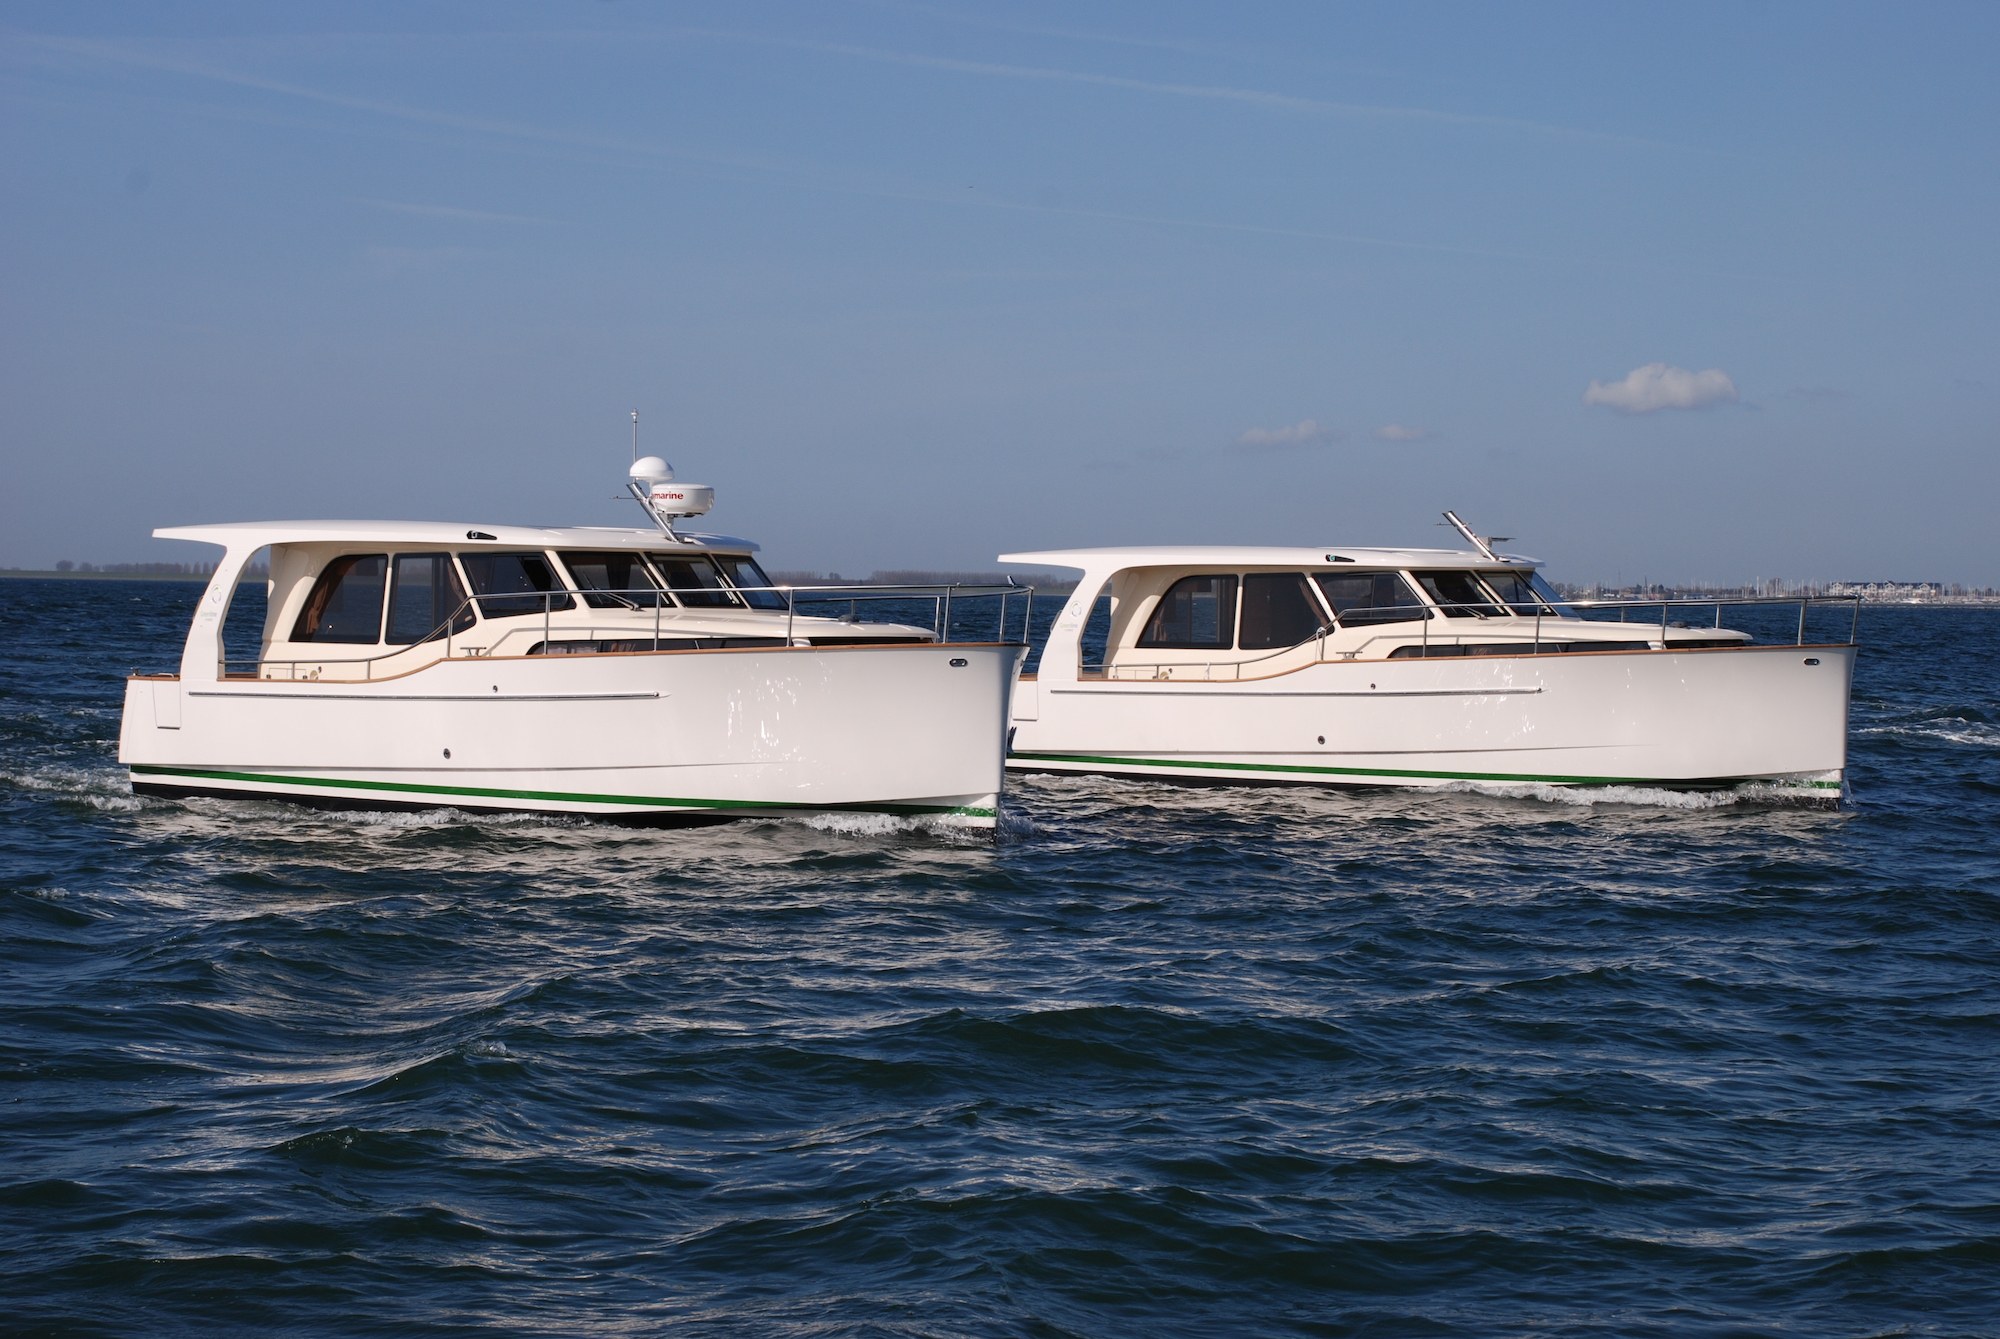 Greenline, Eyachts Australia and New Zealand